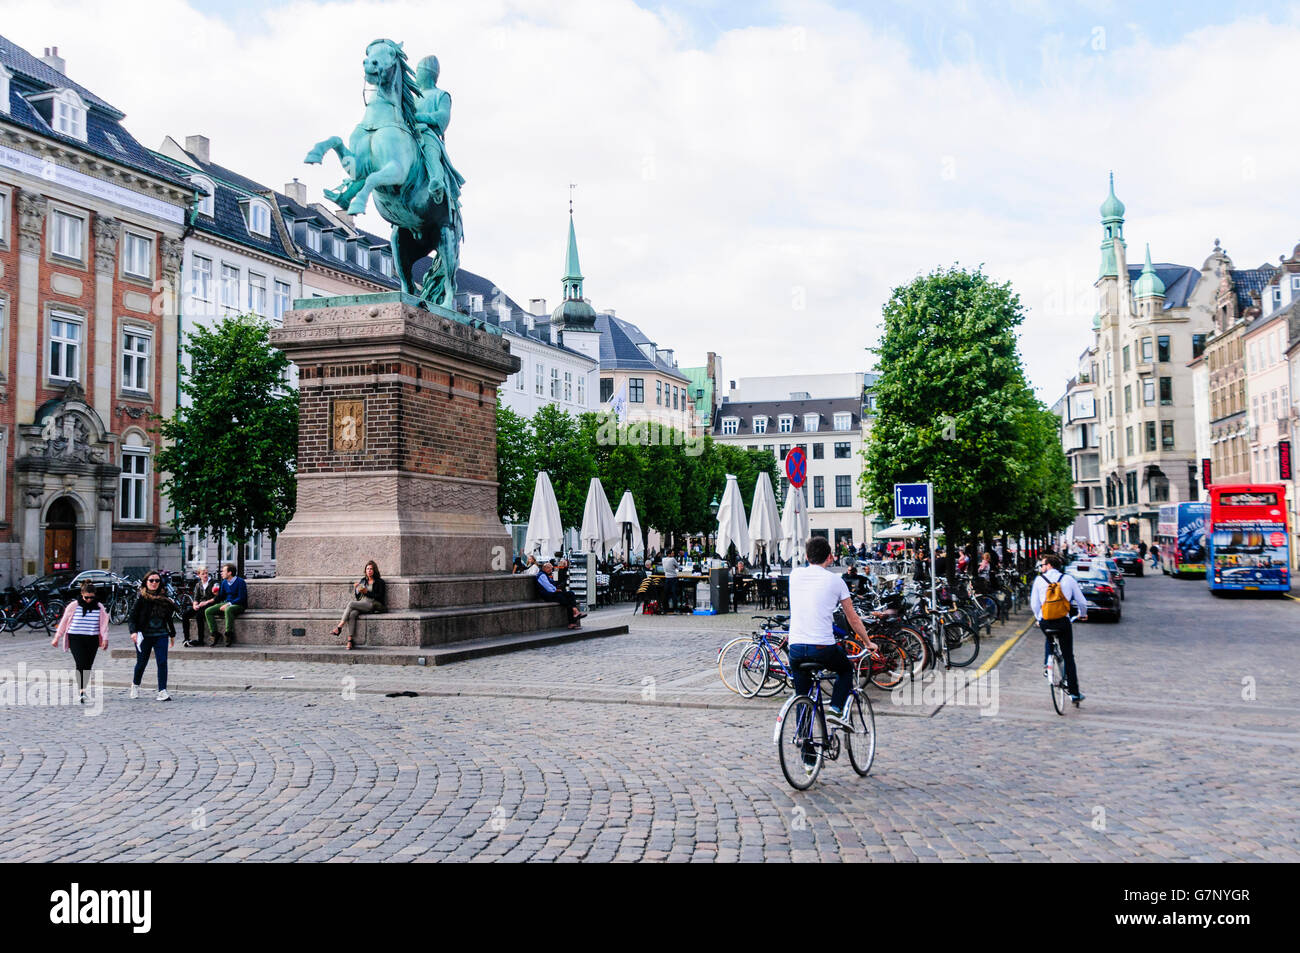 Statue of  Absalon, a warrior bishop knight who was the founder of Copenhagen, on horseback at Højbro Plads, - Stock Image